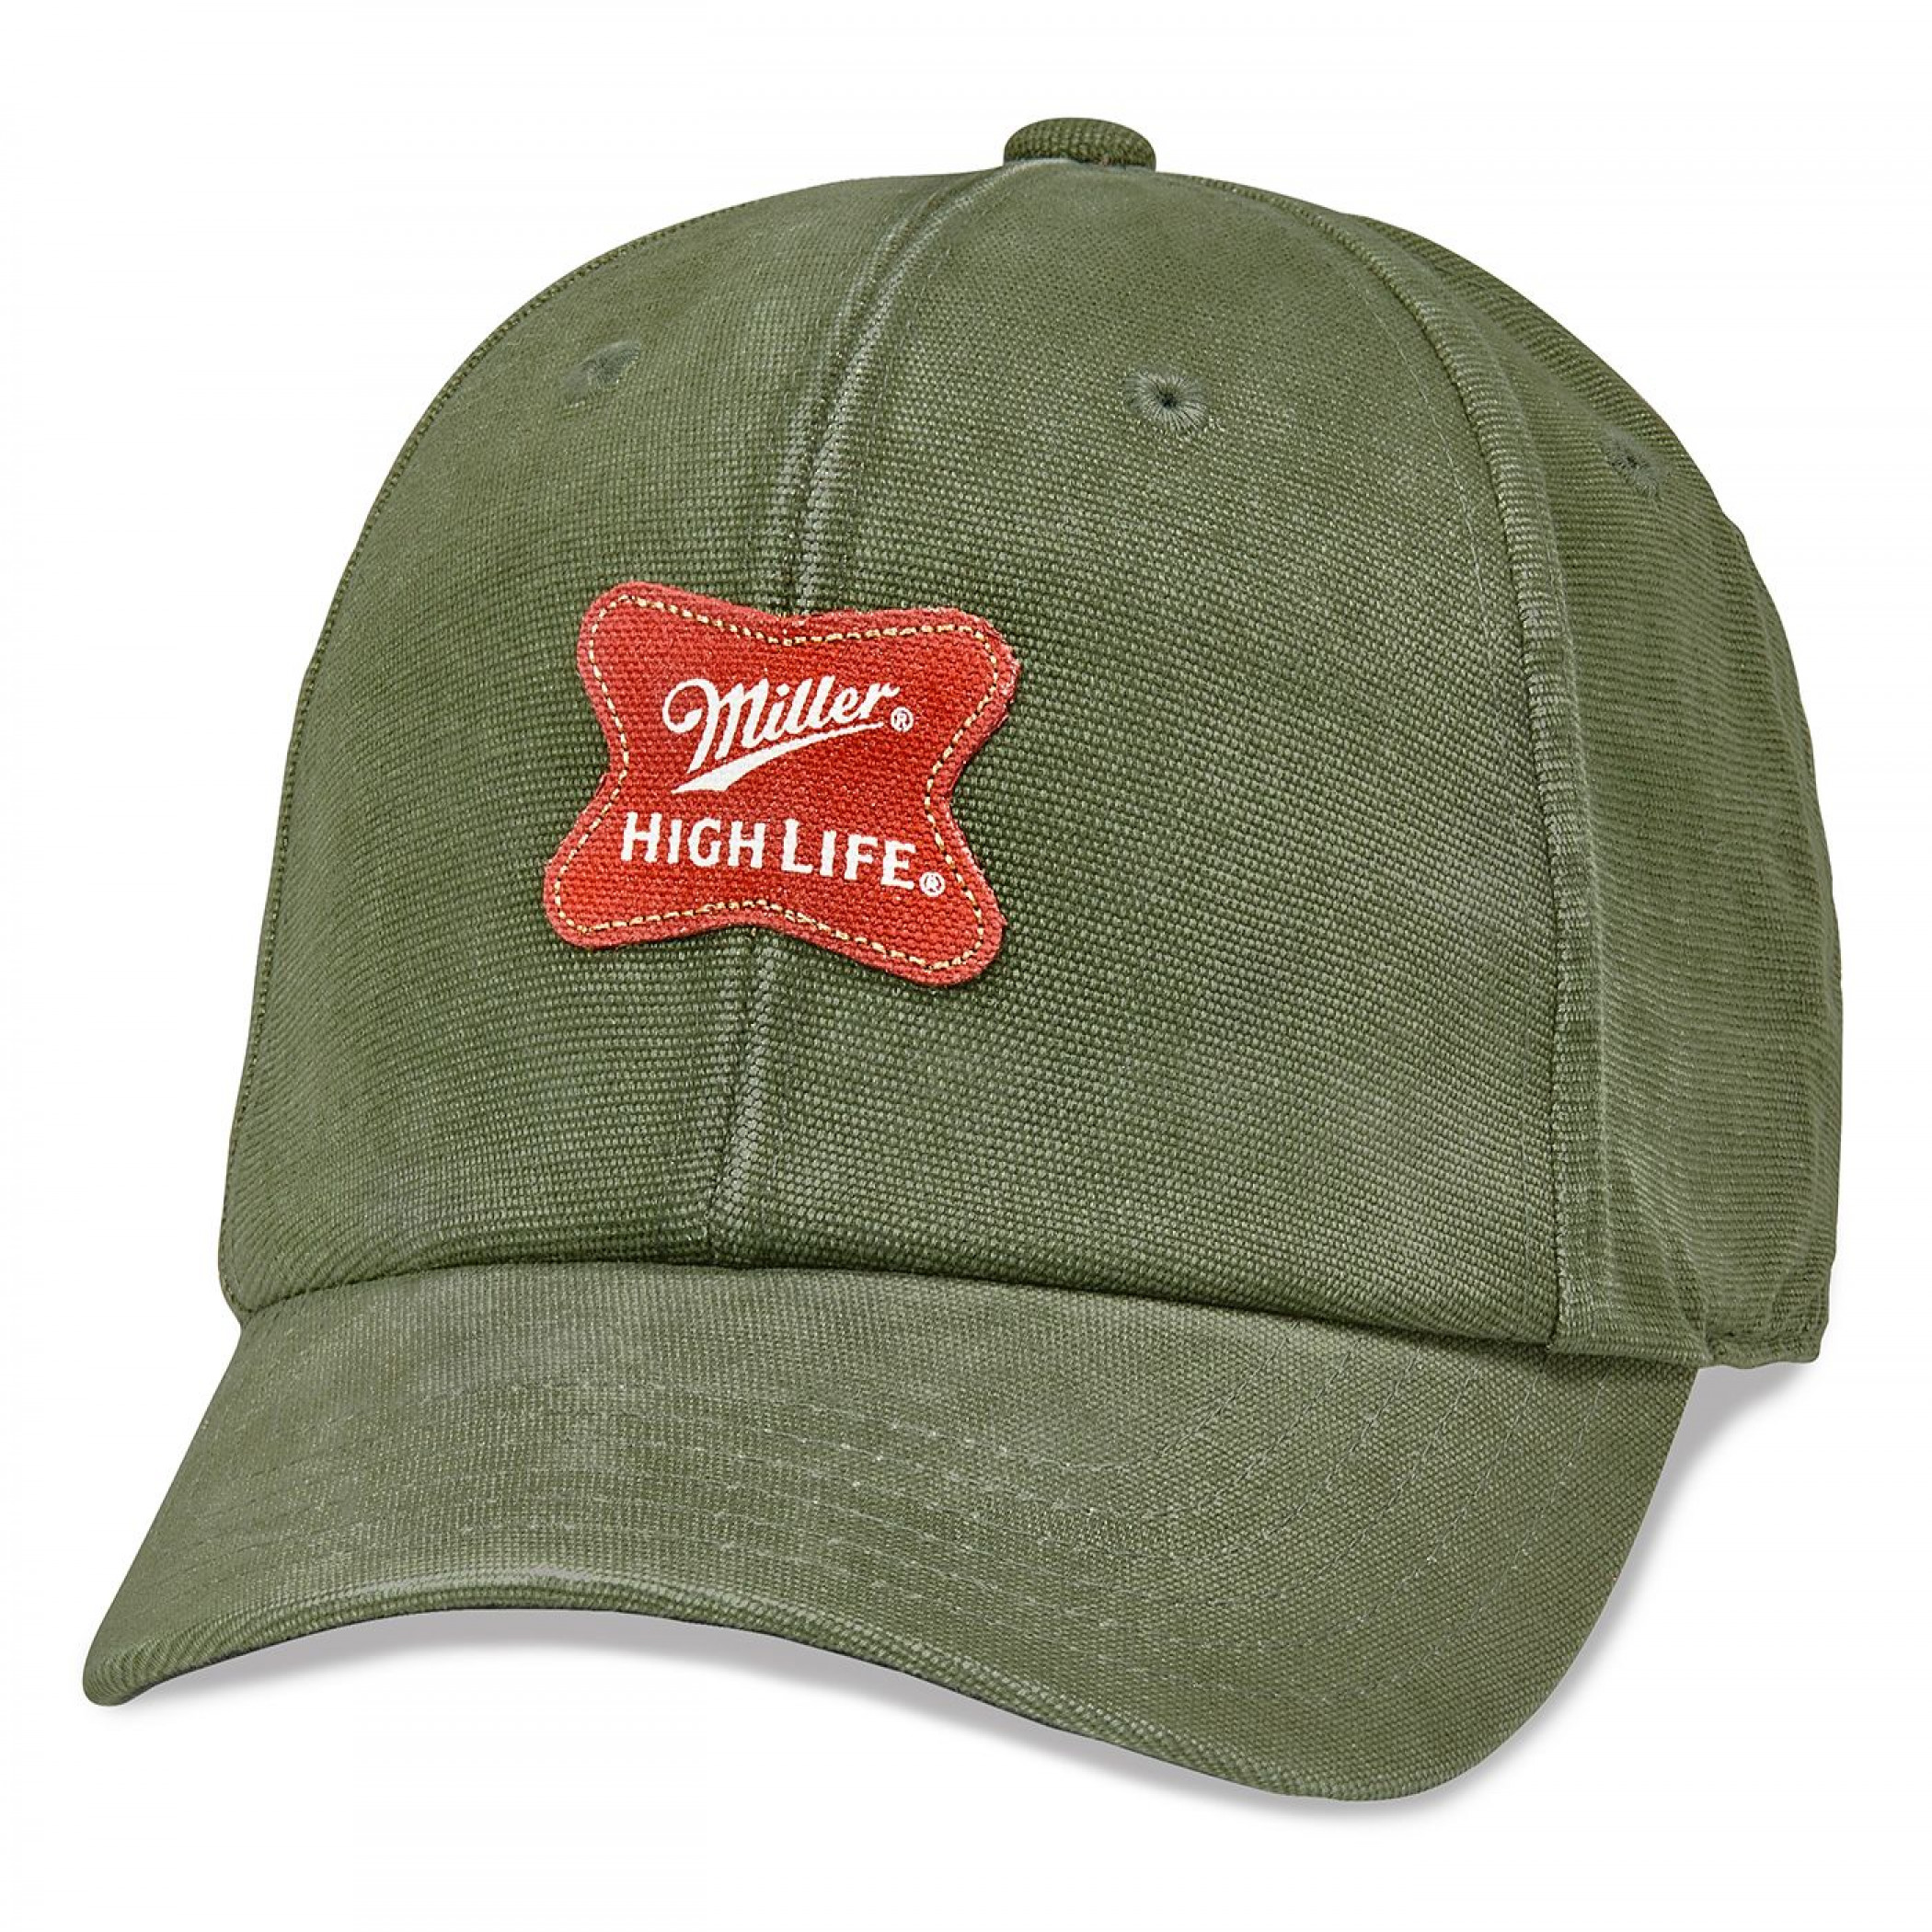 Miller High Life Patch Adjustable Army Green Dad Hat